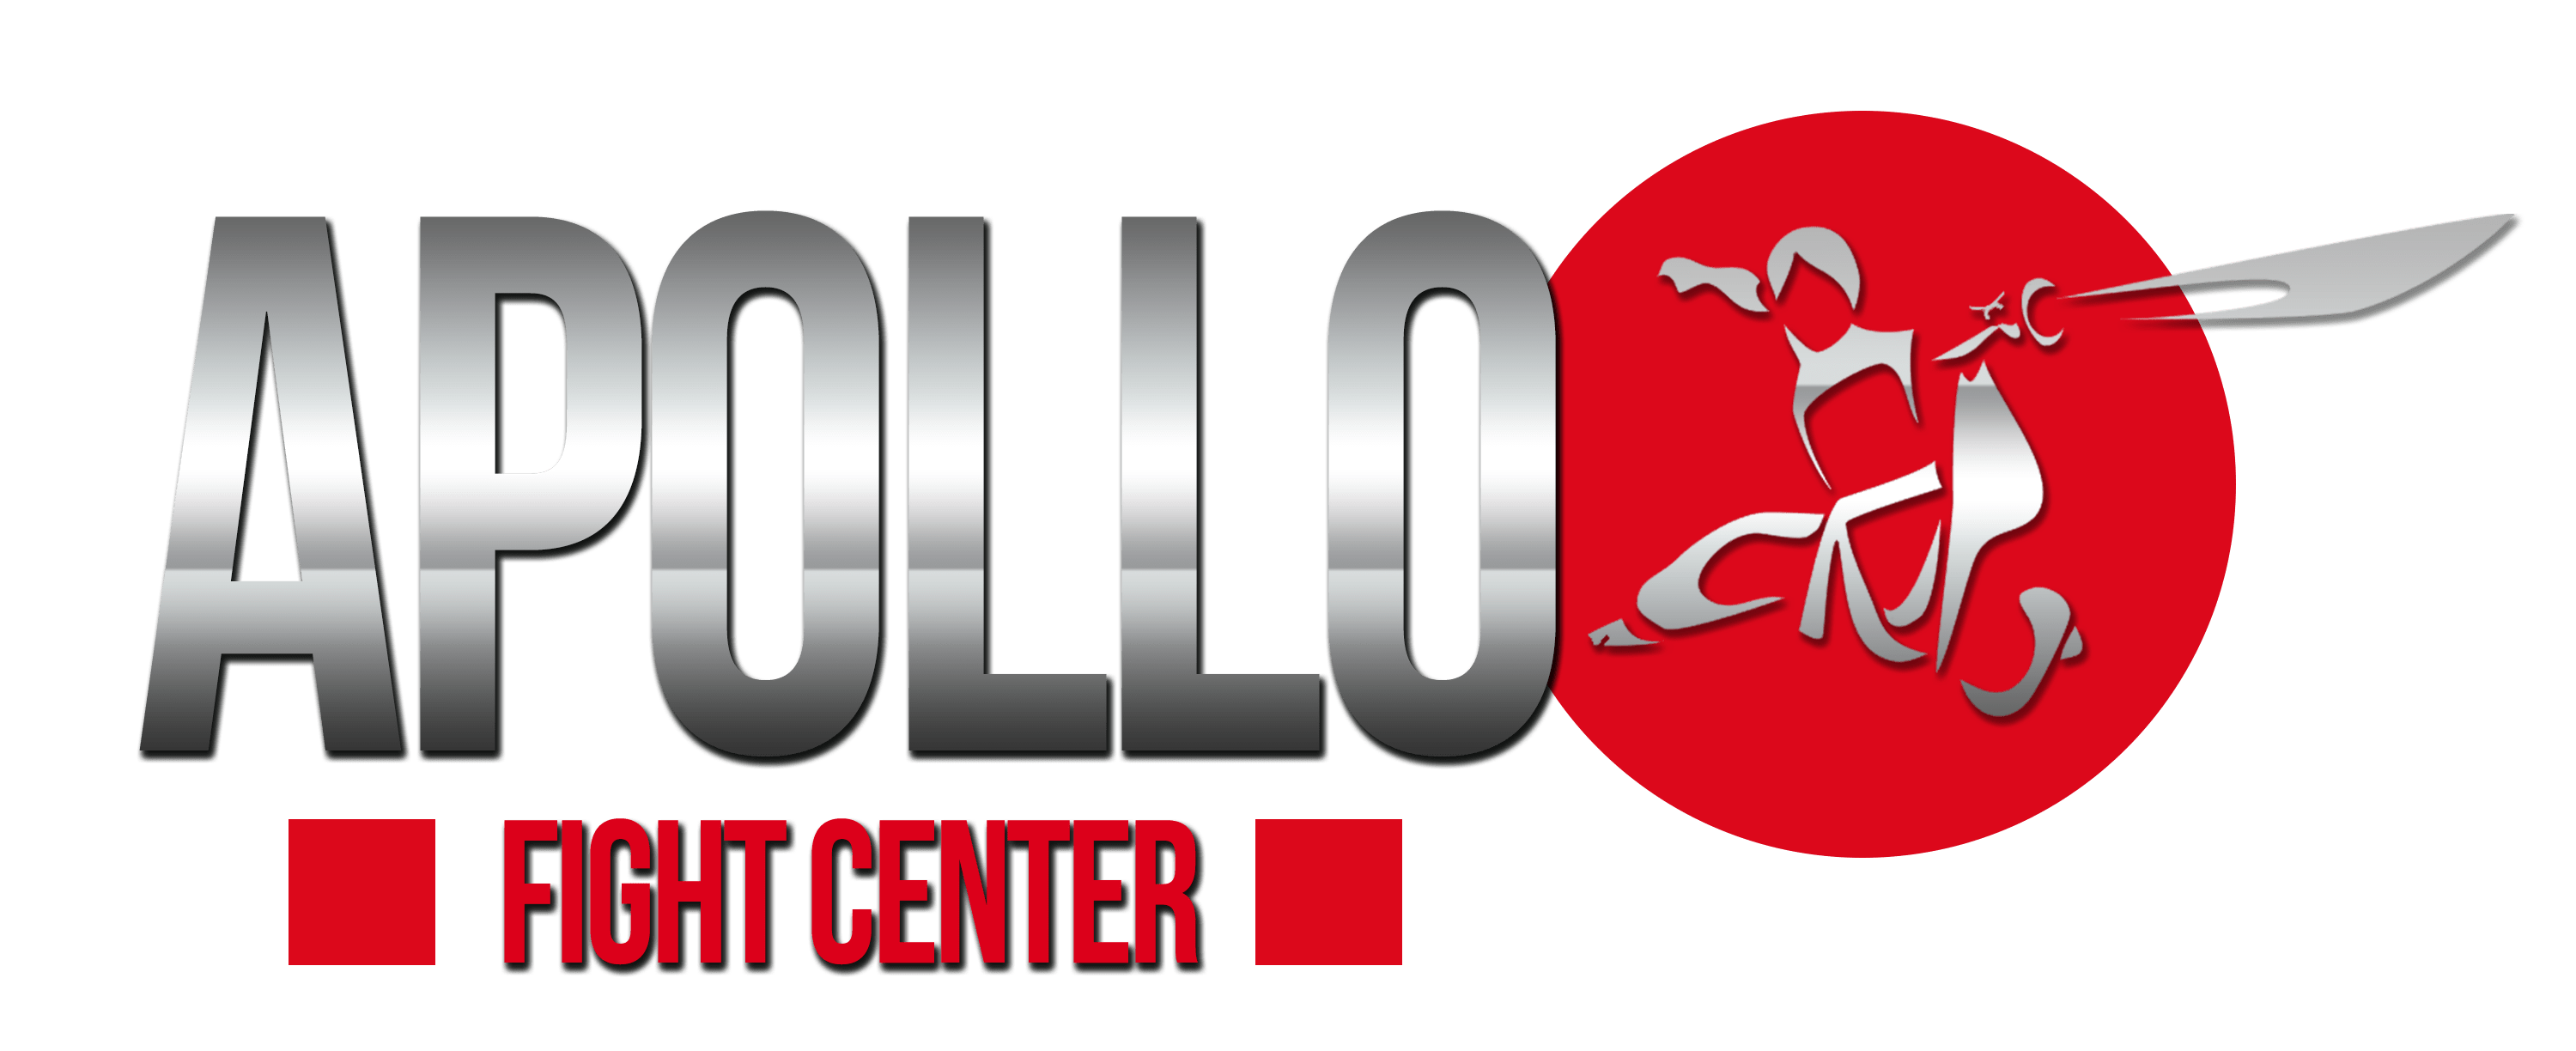 Apollo Fight Center